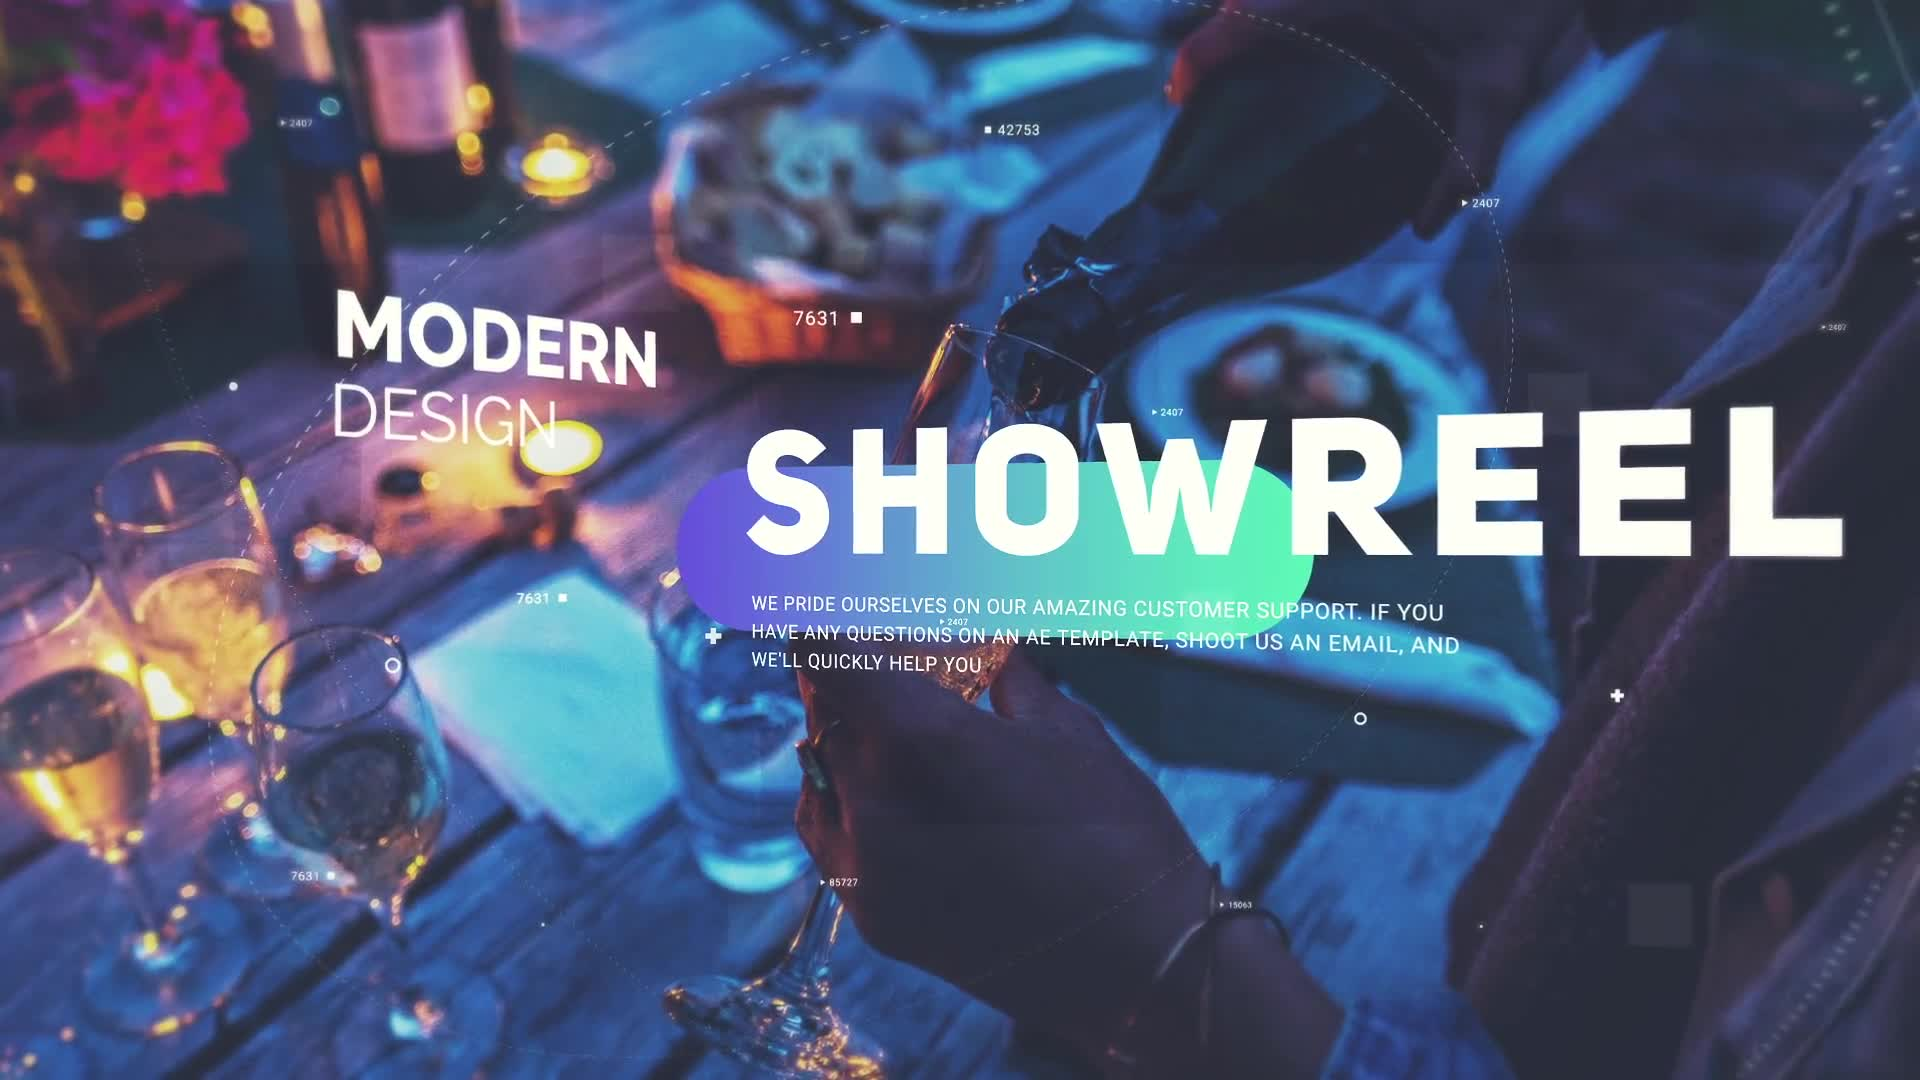 The Slideshow | Intro Videohive 22197576 After Effects Image 8